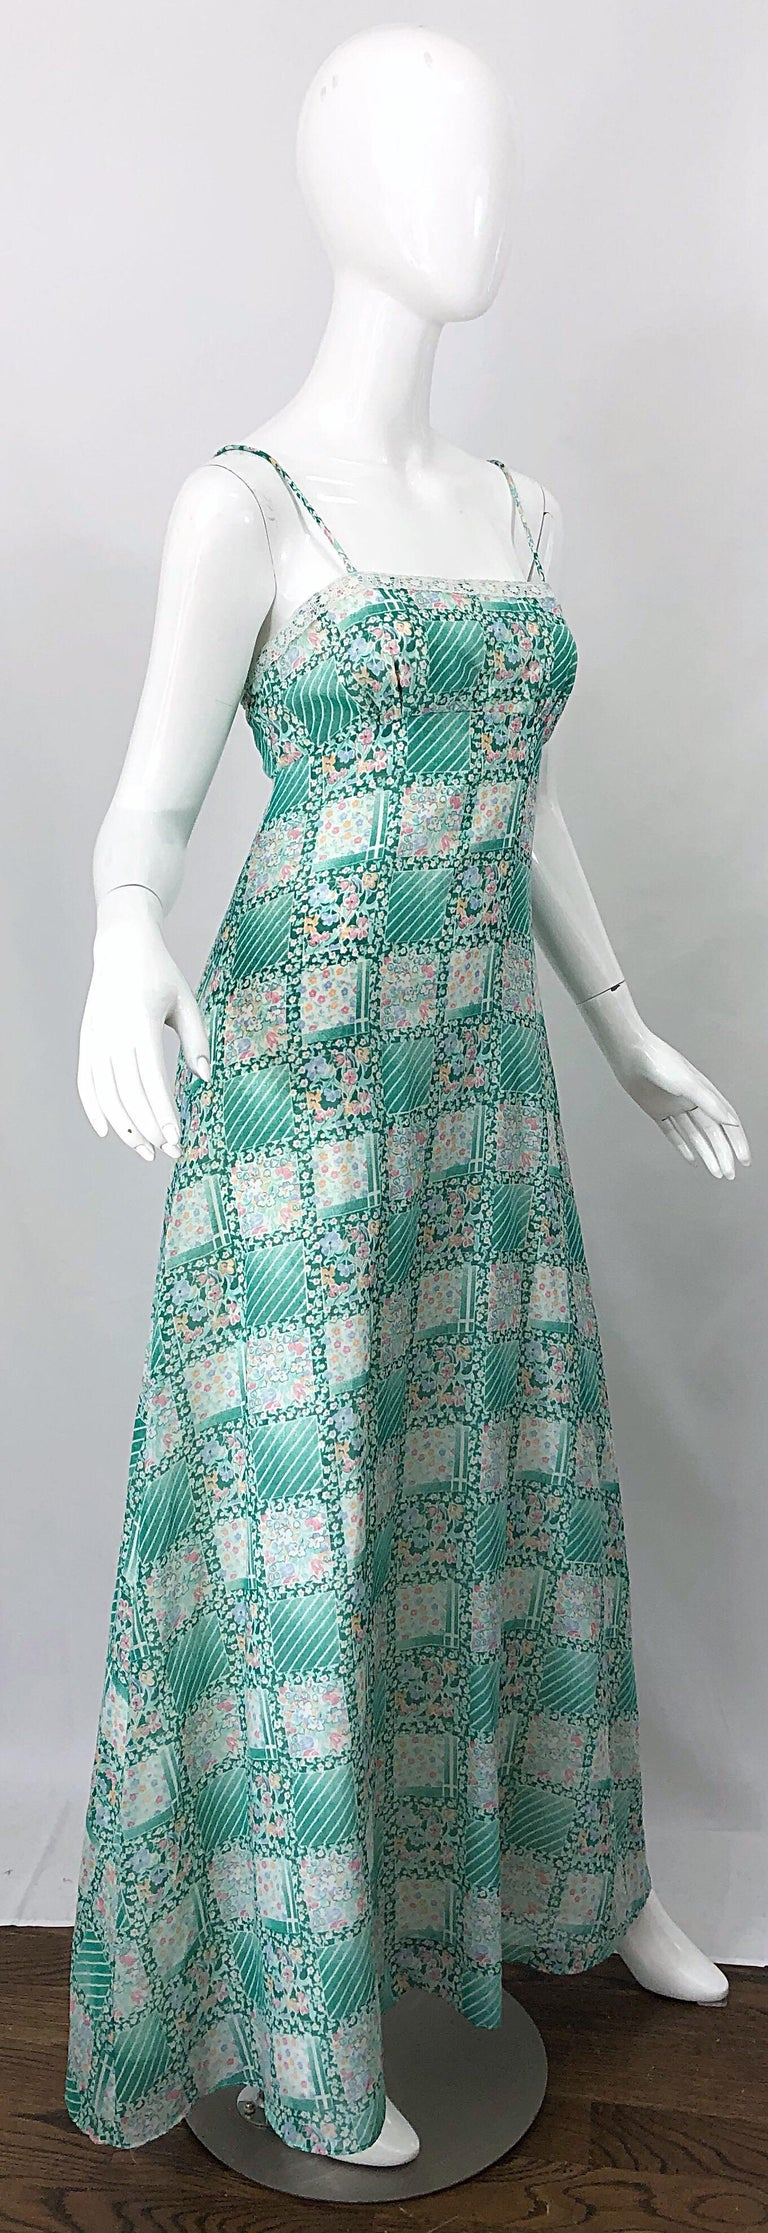 Green 70s Maxi Dress  Blue Pink Abstract Pattern  Cotton  Size M